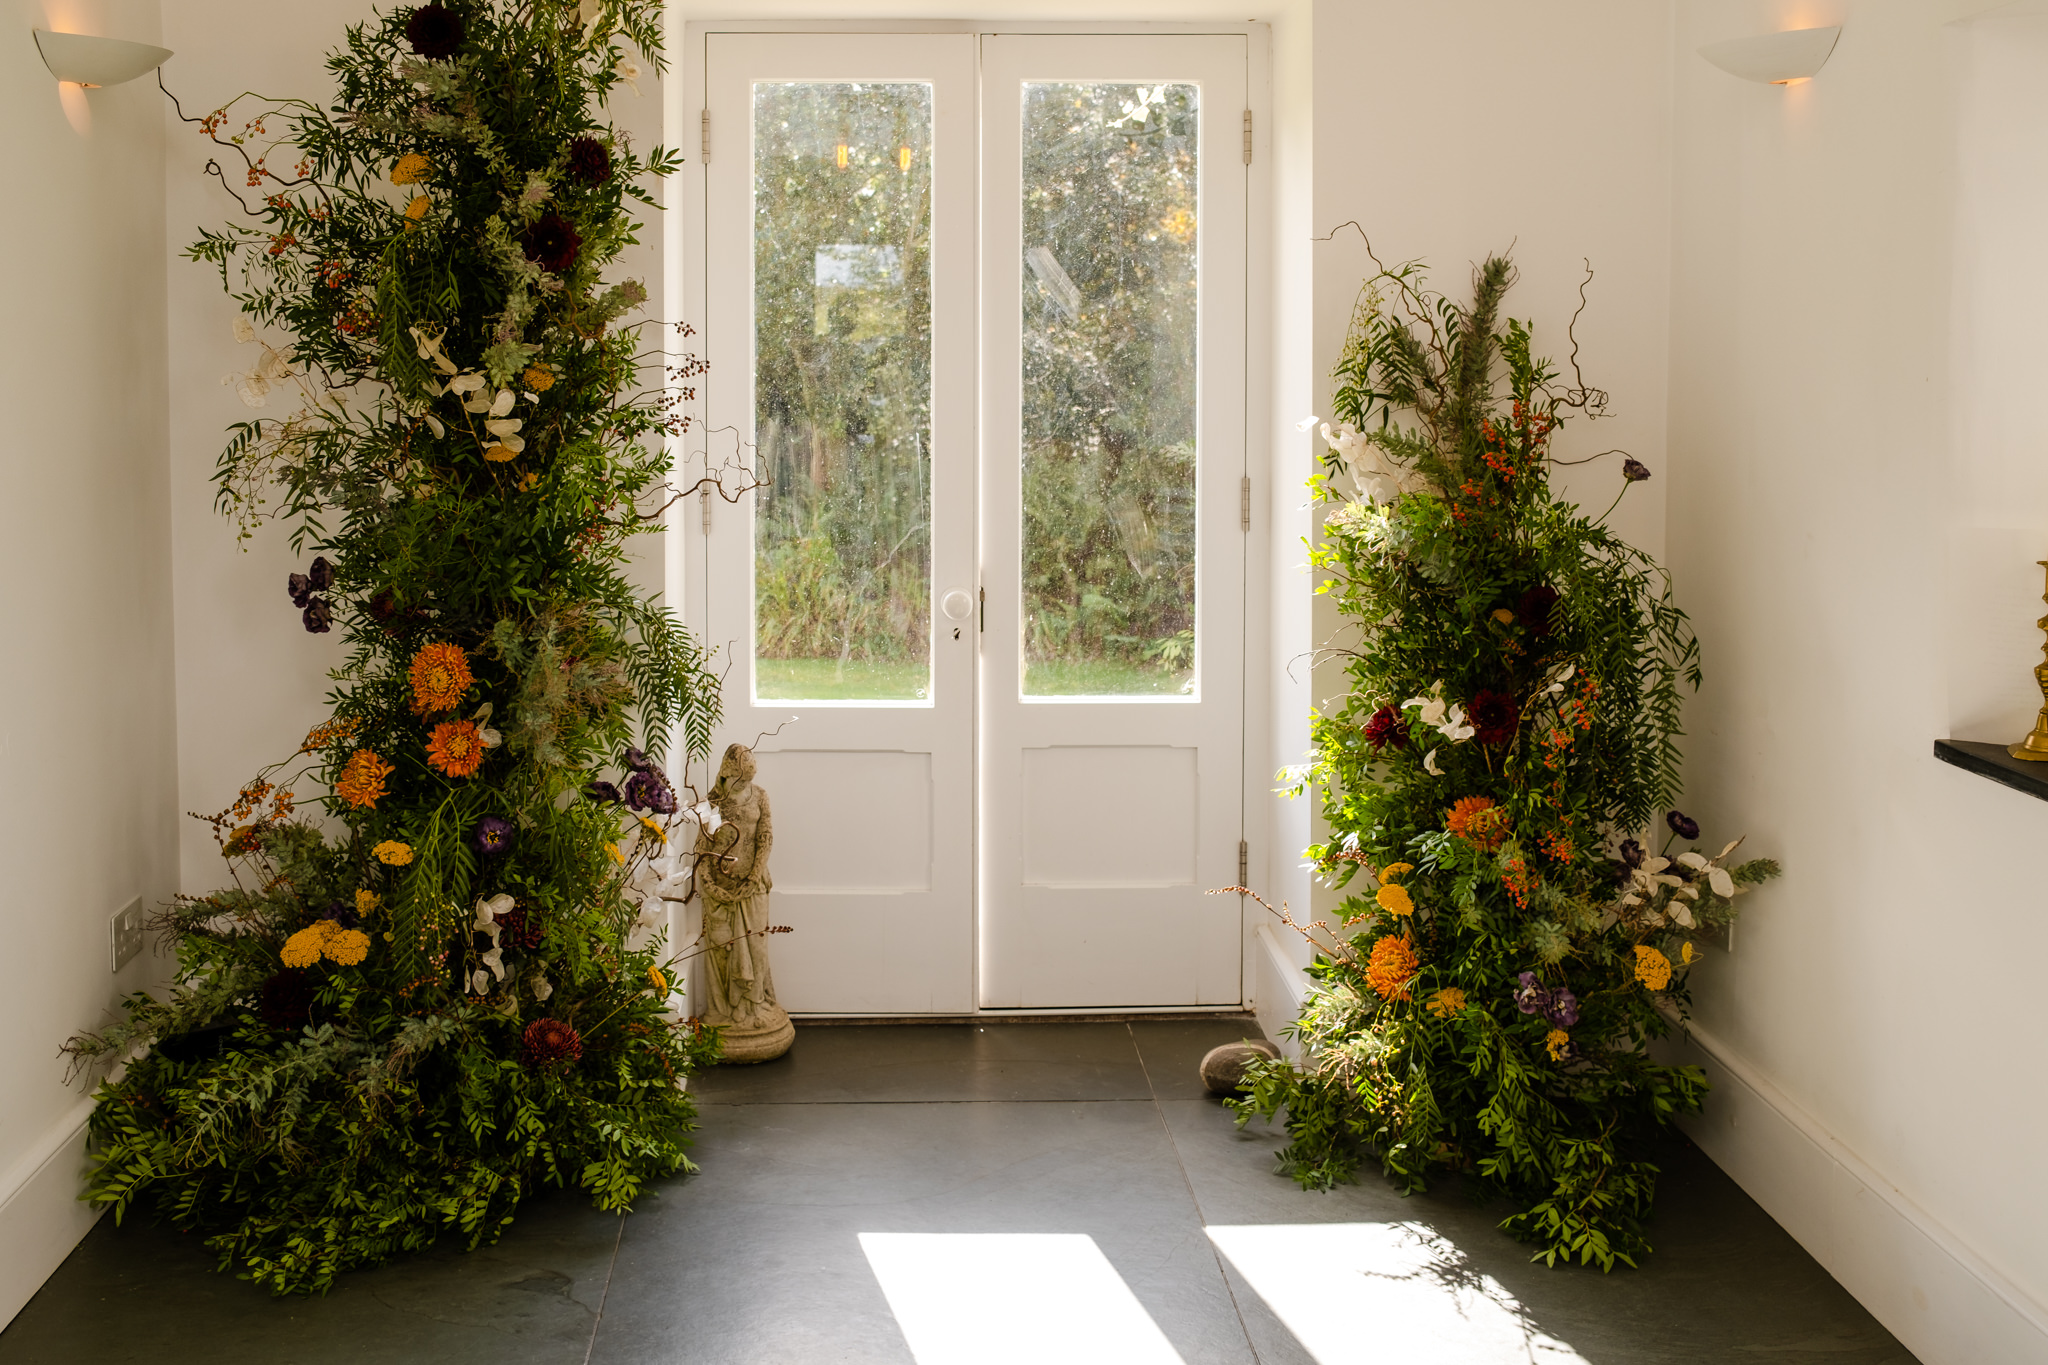 autumn wedding flowers installation over french doors